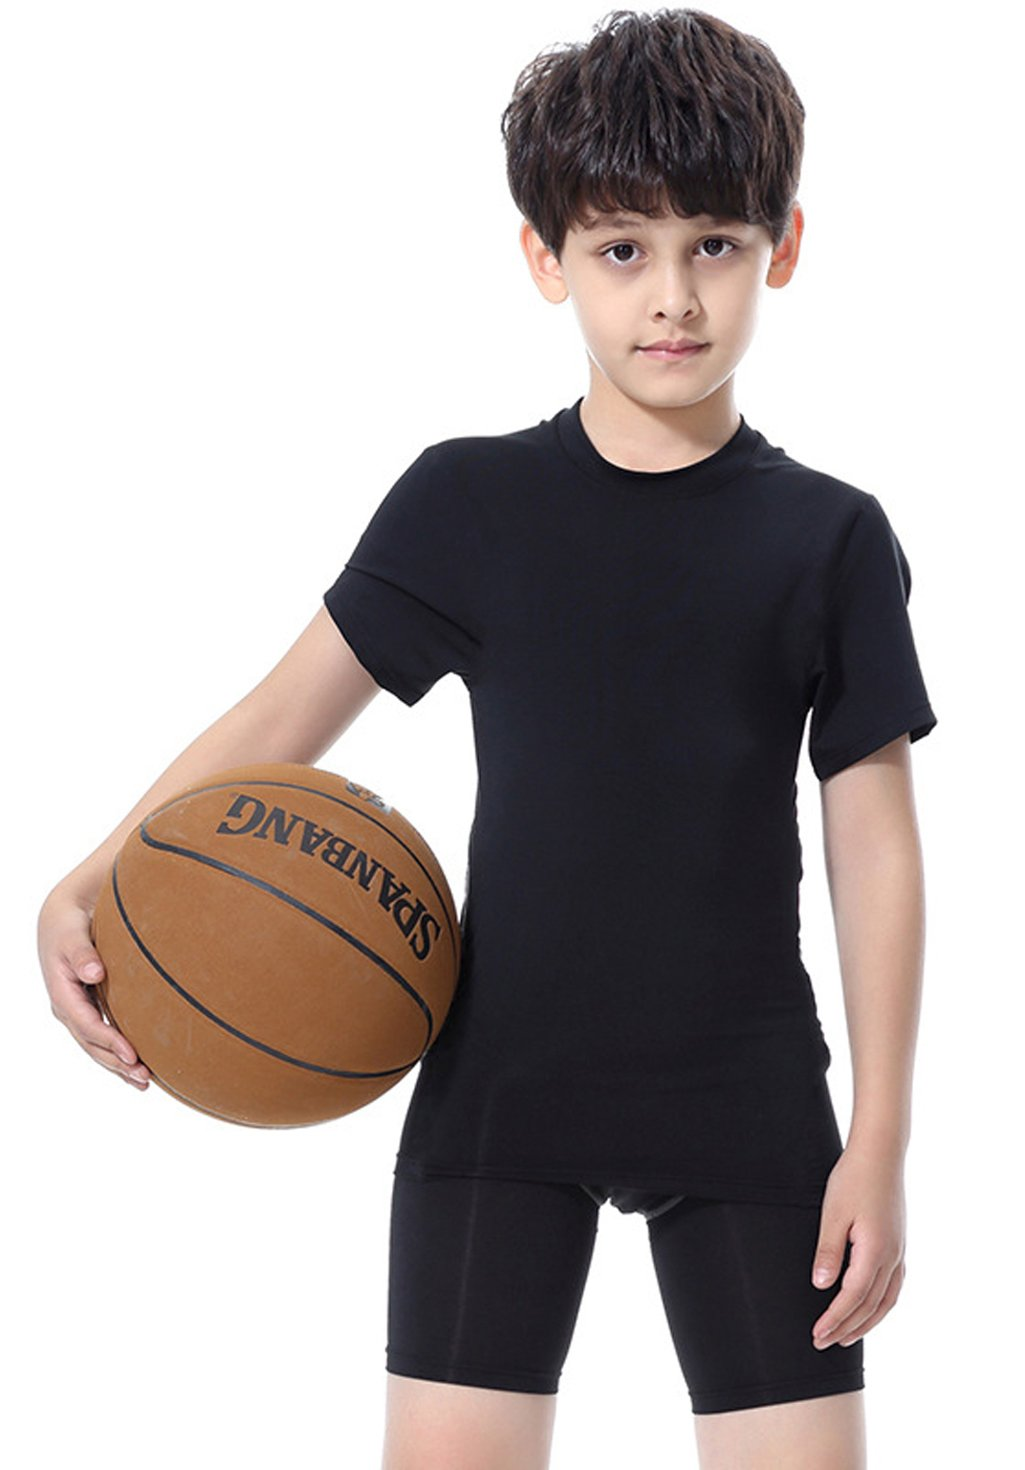 Tailloday Big Boys' 2 Piece Athletic Elastic Dry Fit Compression T-Shirt and Short Set (Black-2 Short, 120)